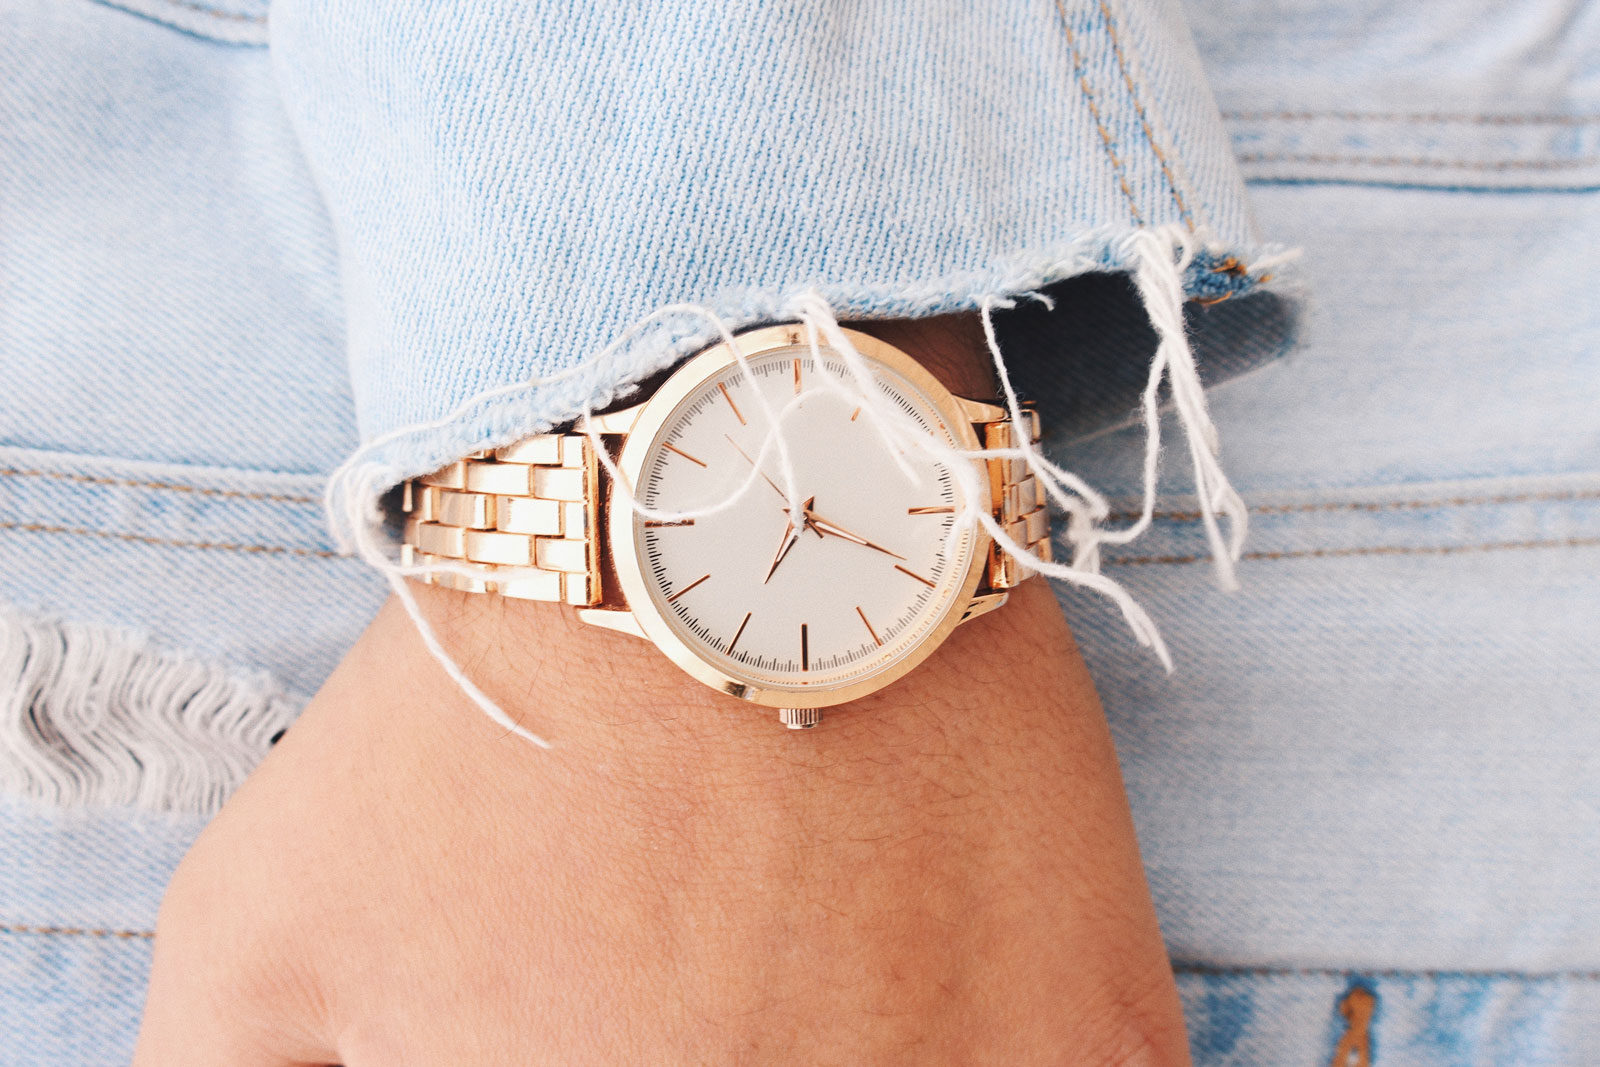 Women's Watch | Are Women's Watches Becoming More Fashionable & Popular?